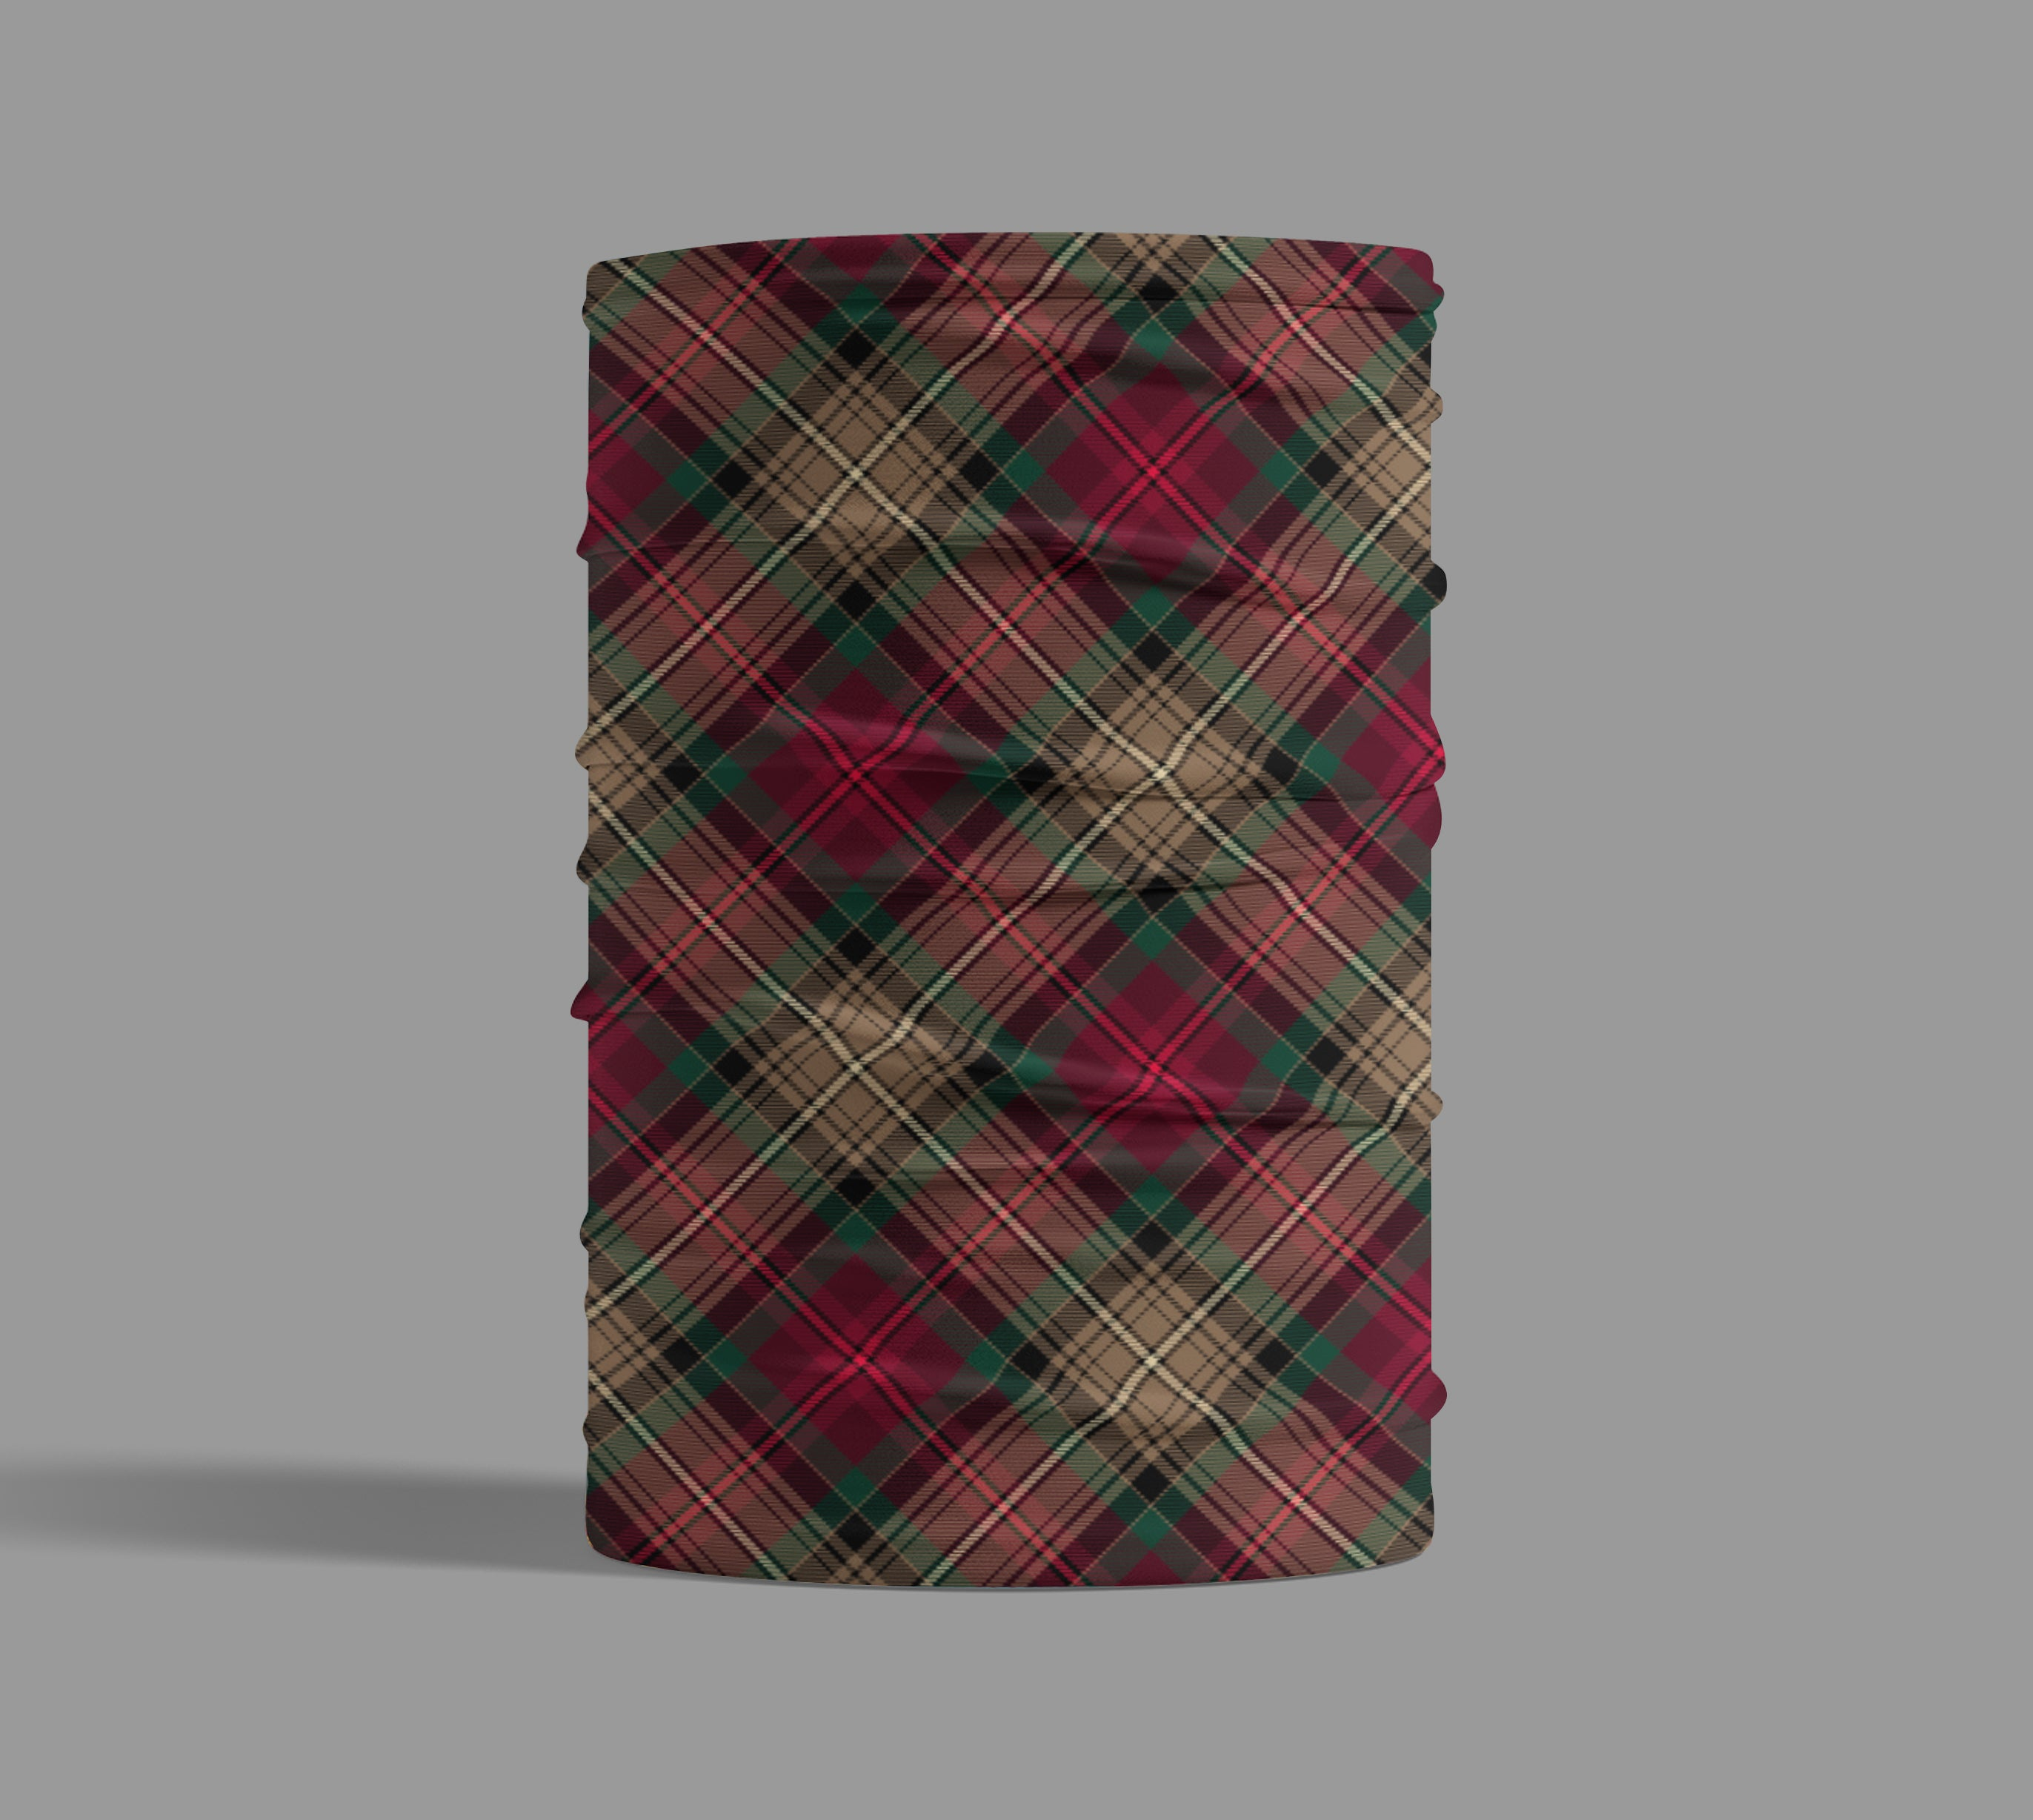 Declaration of Arbroath 7th Centennial Anniversary Tartan Neck Gaiter Small Sett Pattern for ladies and gents